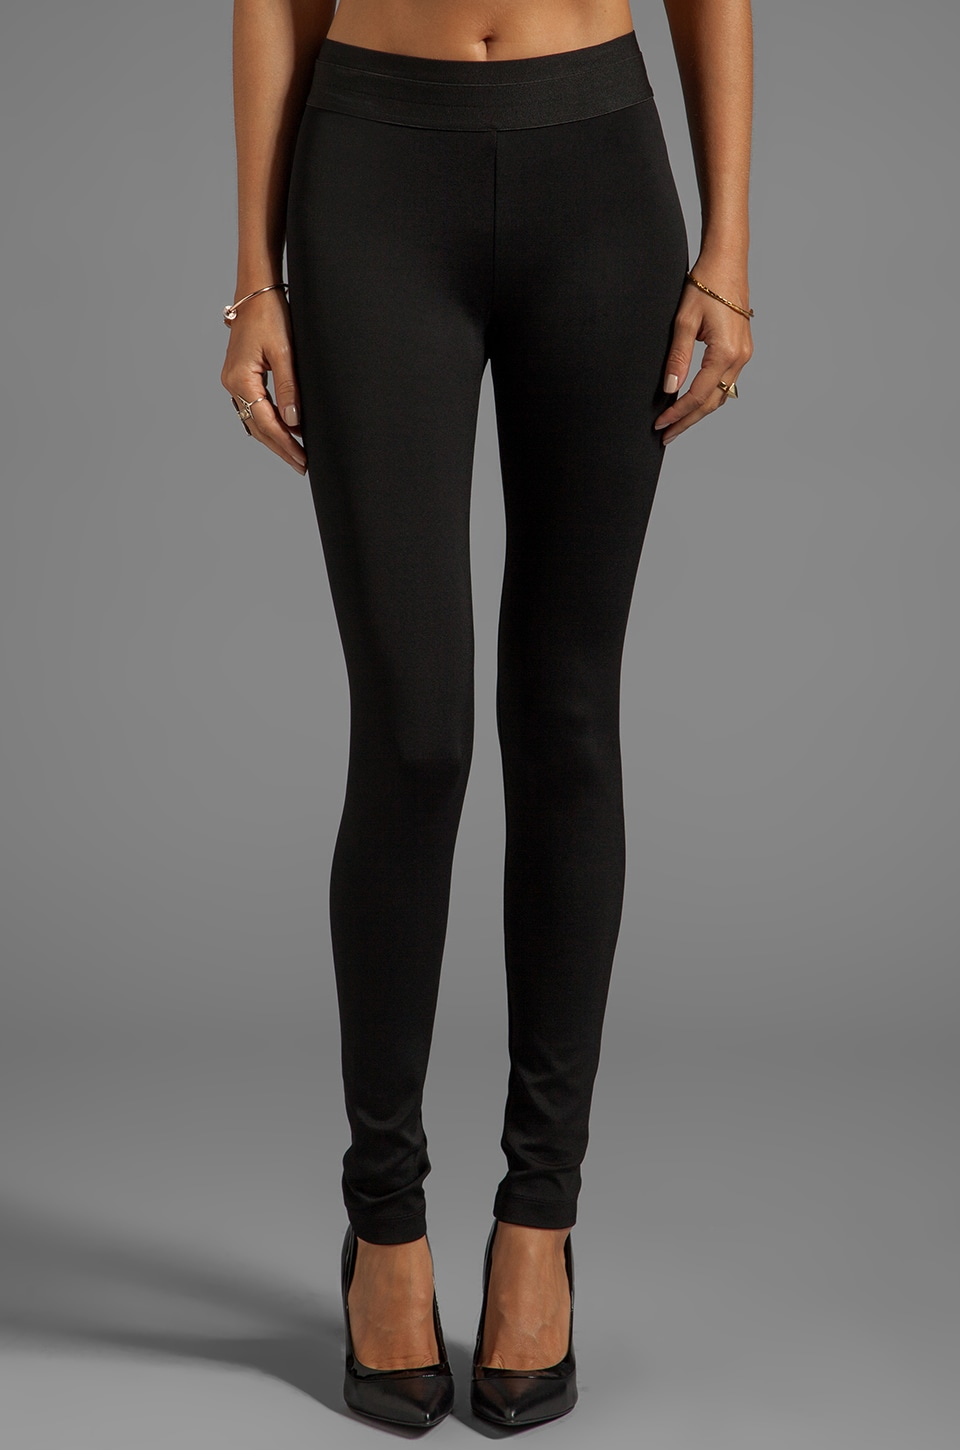 BCBGMAXAZRIA Mason Basic Ponte Legging in Black